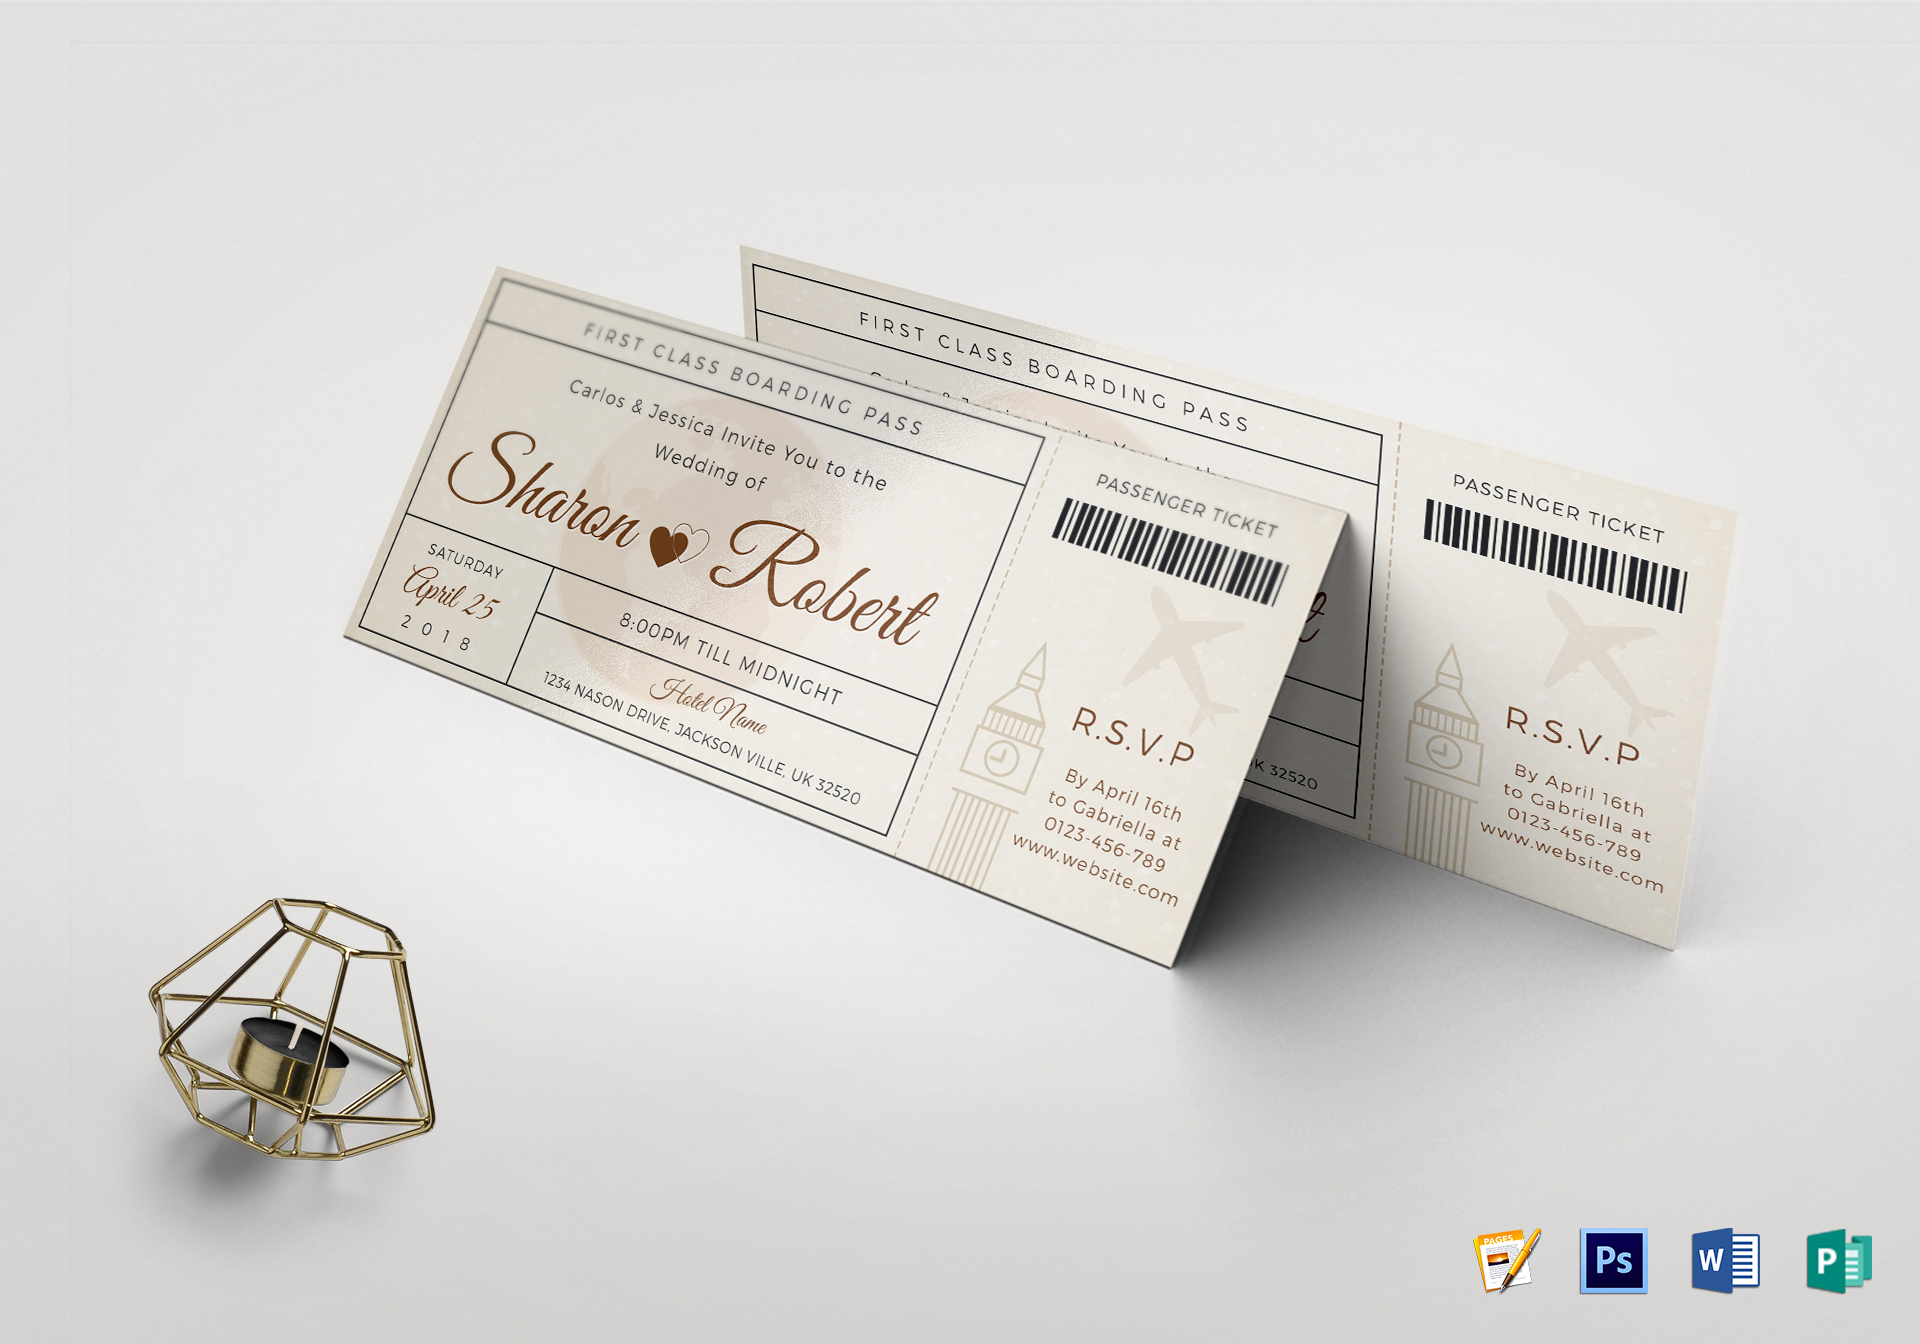 Wedding Boarding Pass Invitation Ticket Design Template In Psd Word Publisher Pages